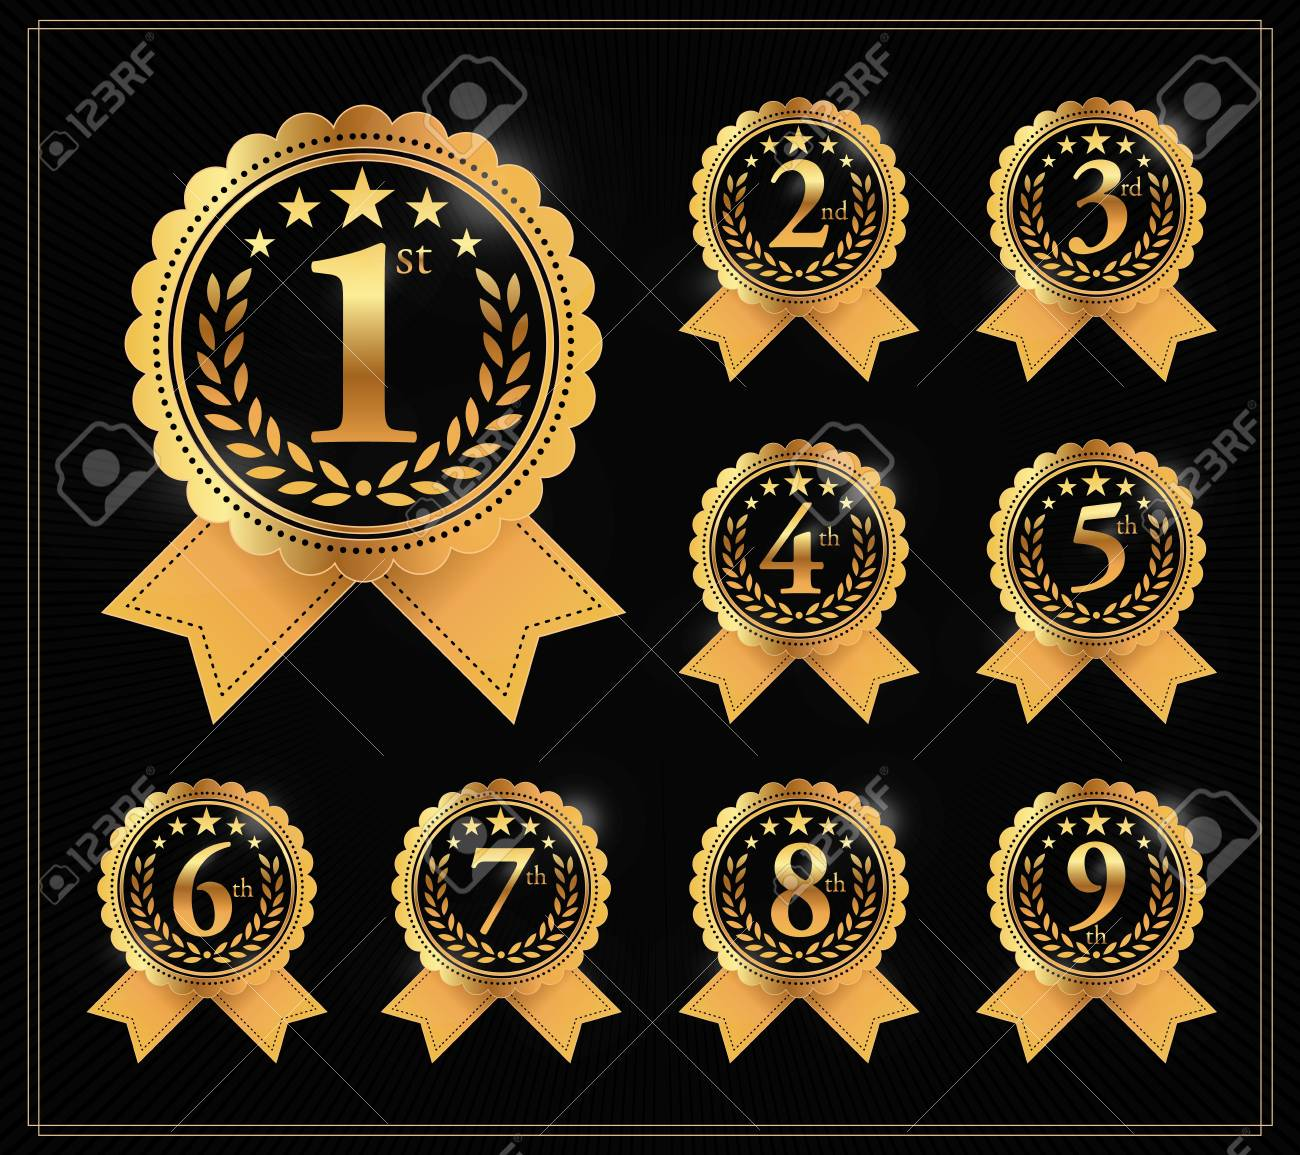 Award golden label of First, second and third winner. 1st, 2nd, 3rd, 4th, 5th, 6th, 7th, 8th and 9th Vector set - 87281597